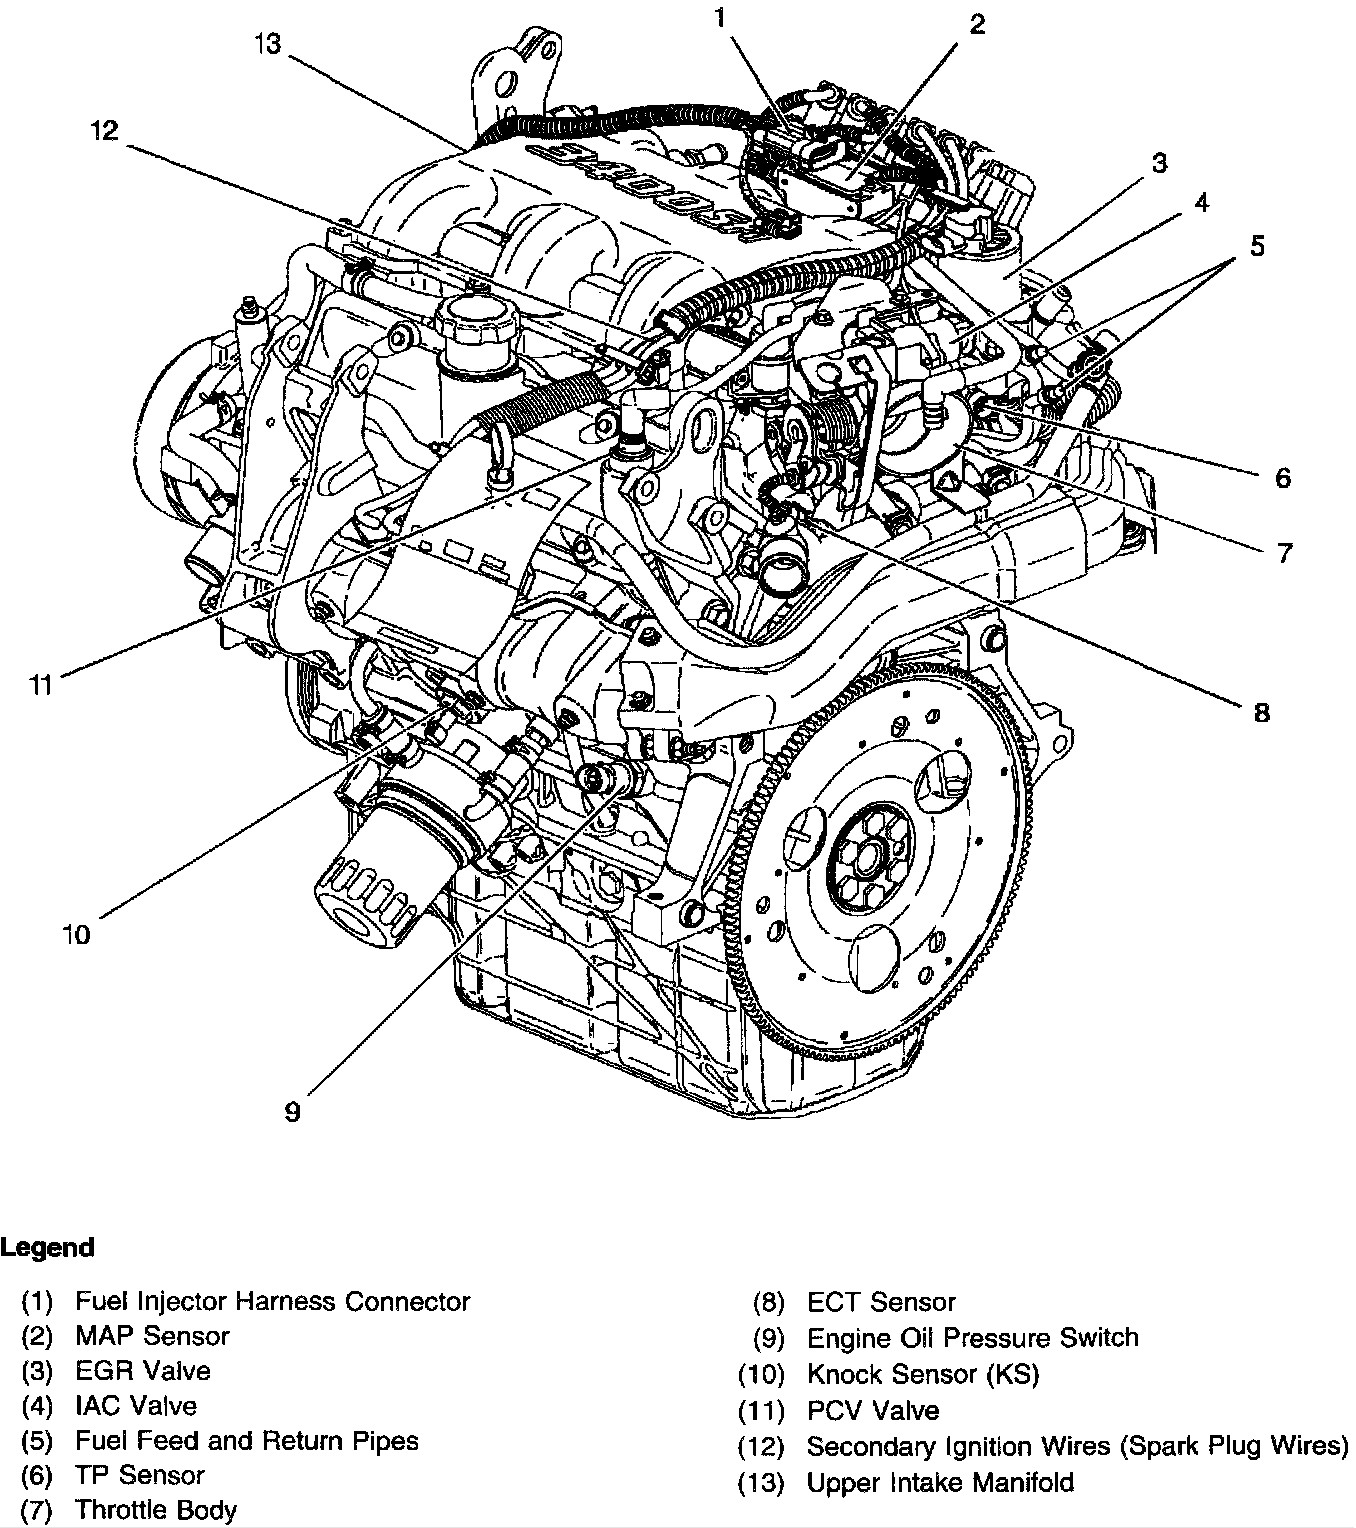 diagram of 3 4l v6 engine experts of wiring diagram u2022 rh evilcloud co  uk Chevrolet 3.4 Engine Diagram Pontiac 3.4 Engine Diagram